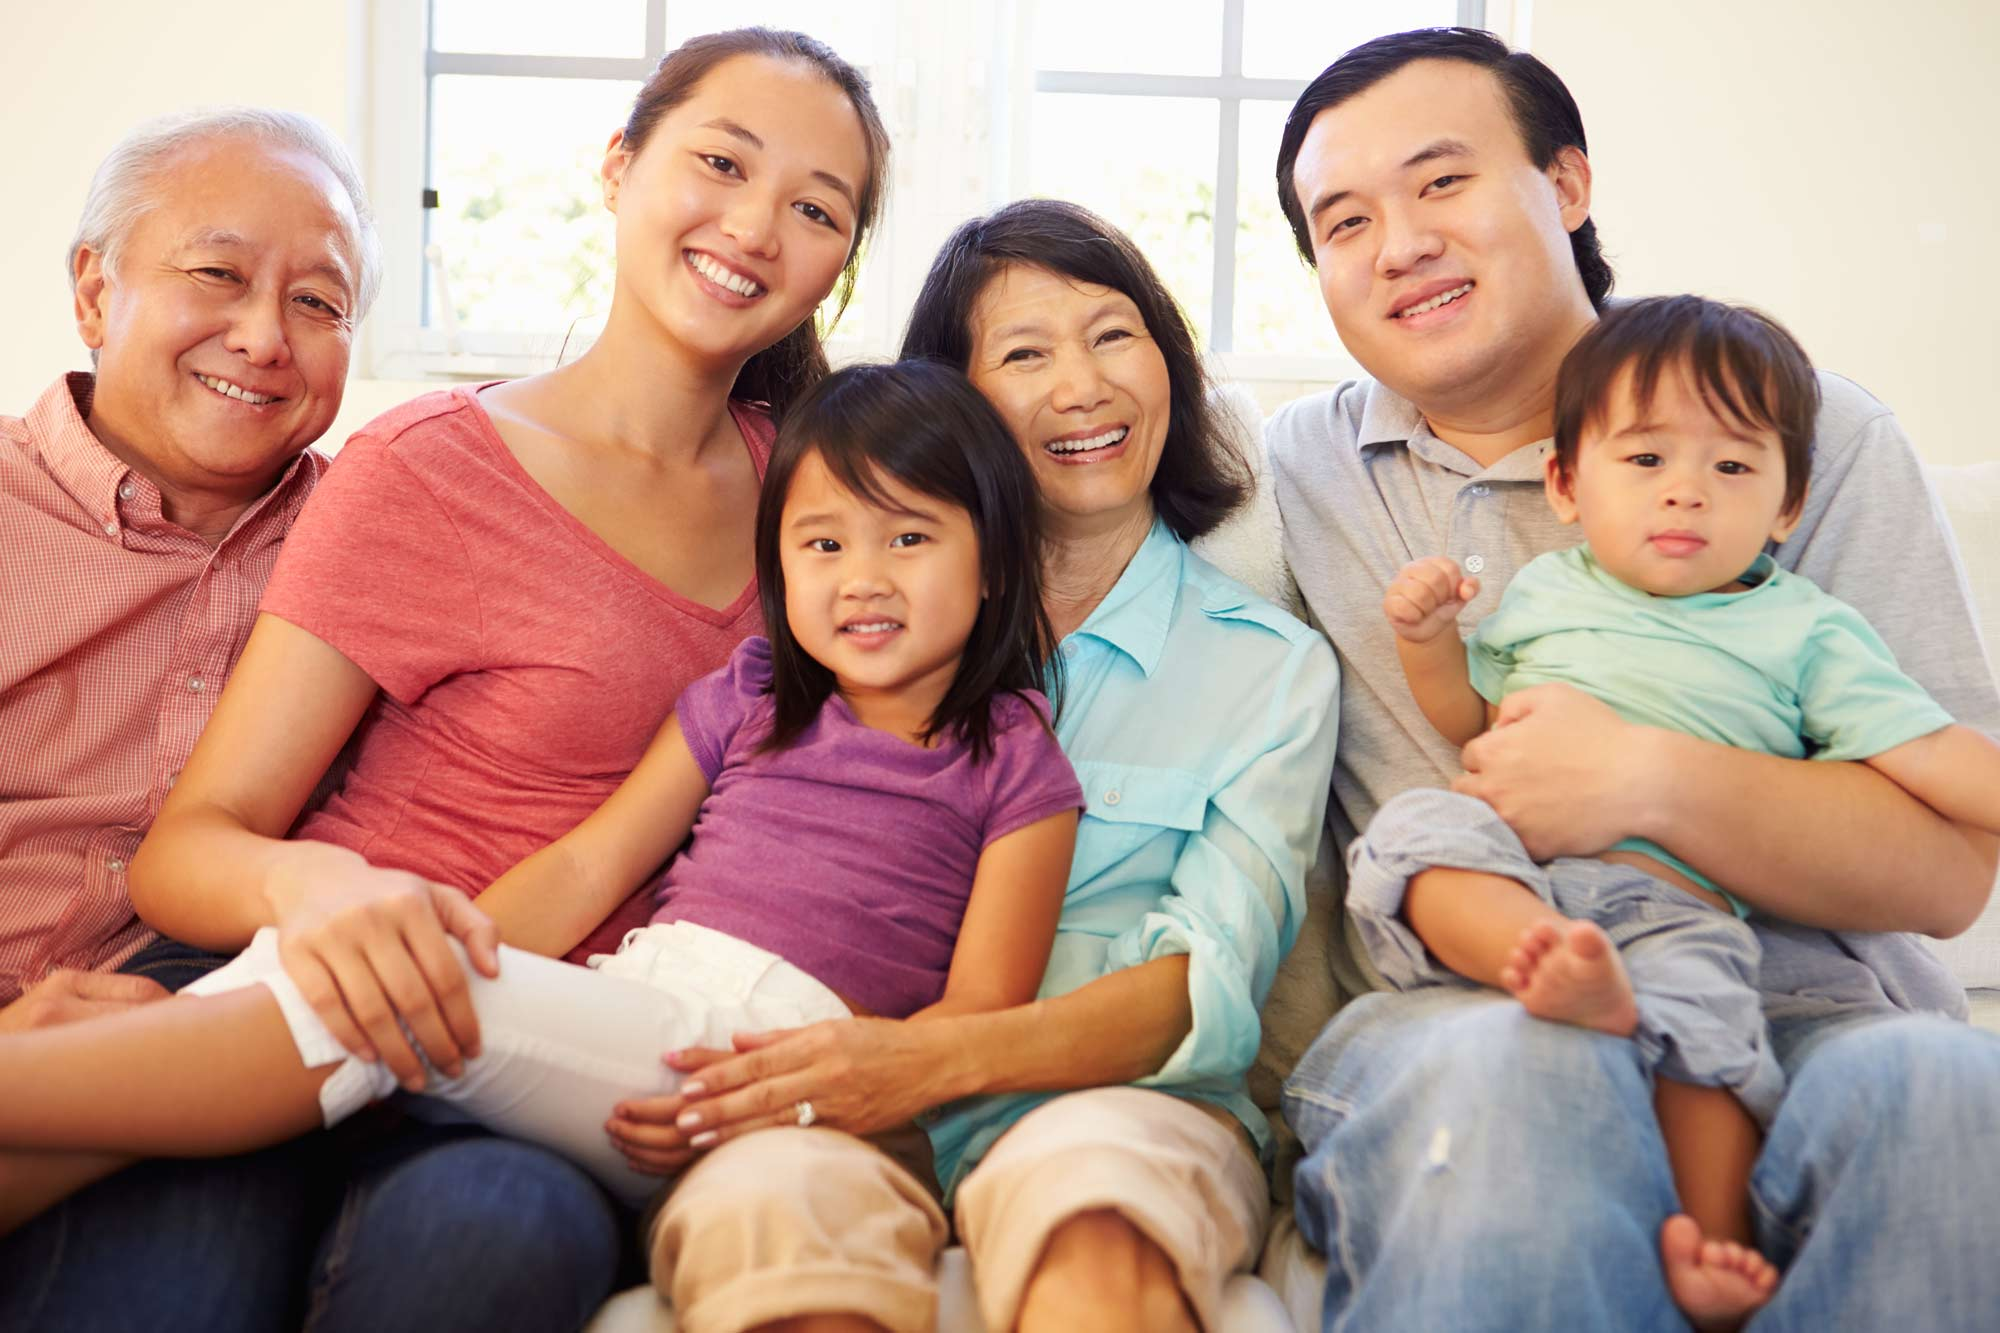 Ring in the New Year with New York Paid Family Leave - The O'Connor ...